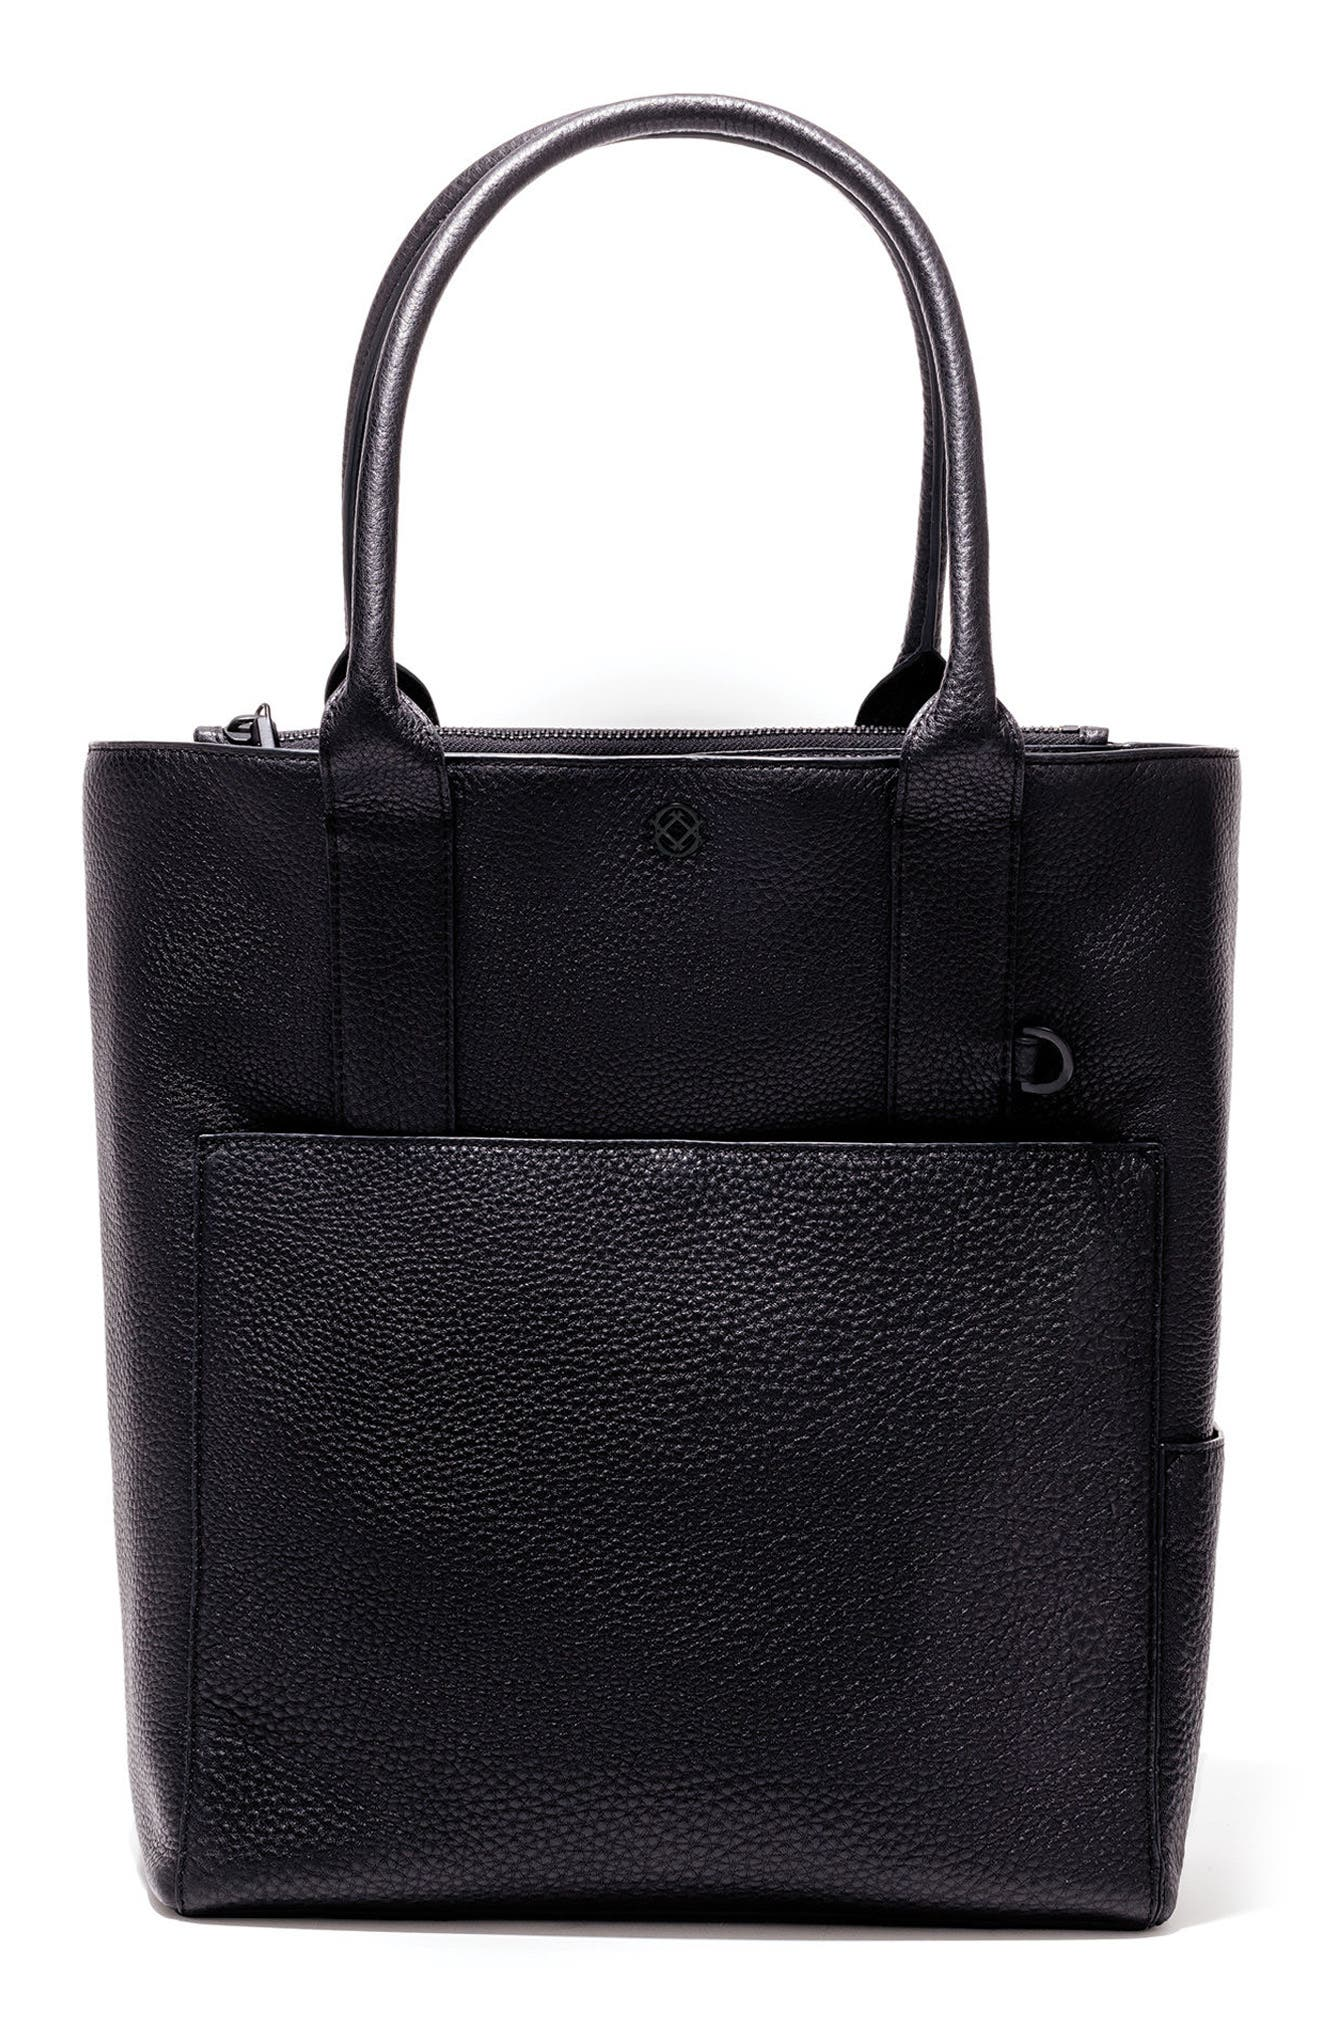 Charlie Leather Tote,                             Main thumbnail 1, color,                             ONYX